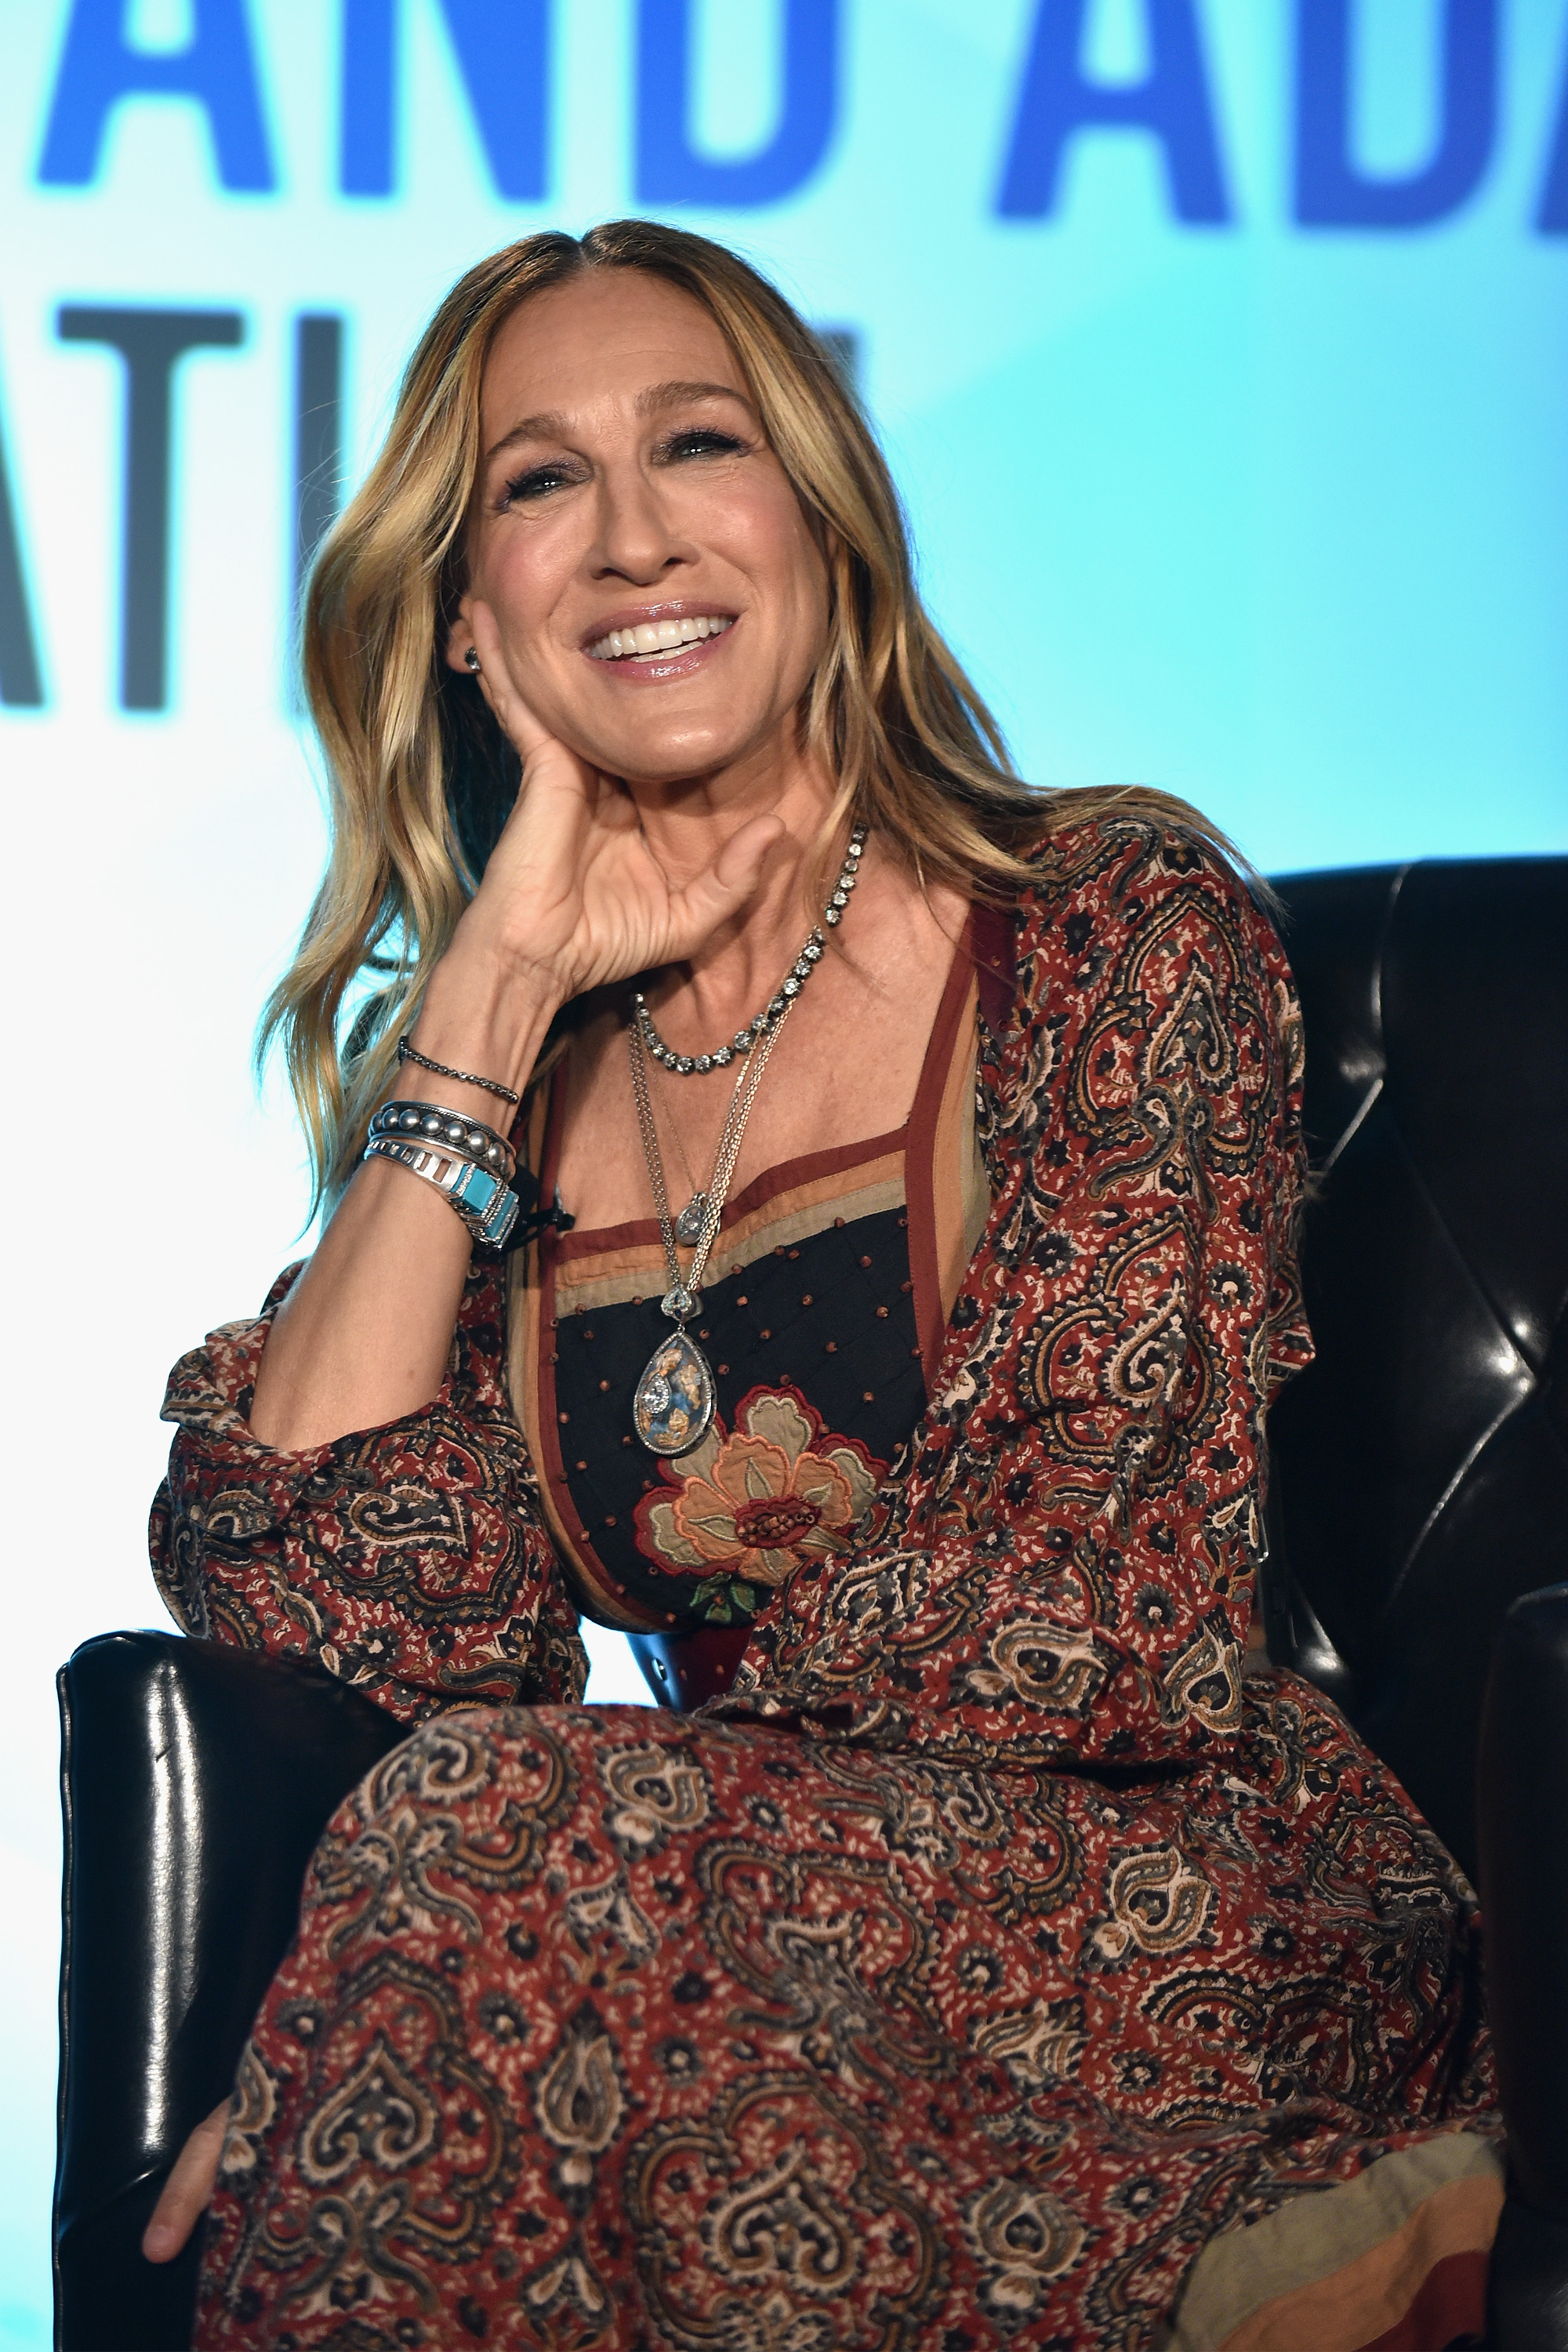 4th Annual Vulture Festival at Milk Studios in New York City                                    Featuring: Sarah Jessica Parker                  Where: New York, New York, United States                  When: 21 May 2017                  Credit: Supplied by WENN                                    **EDITORIAL USE ONLY**